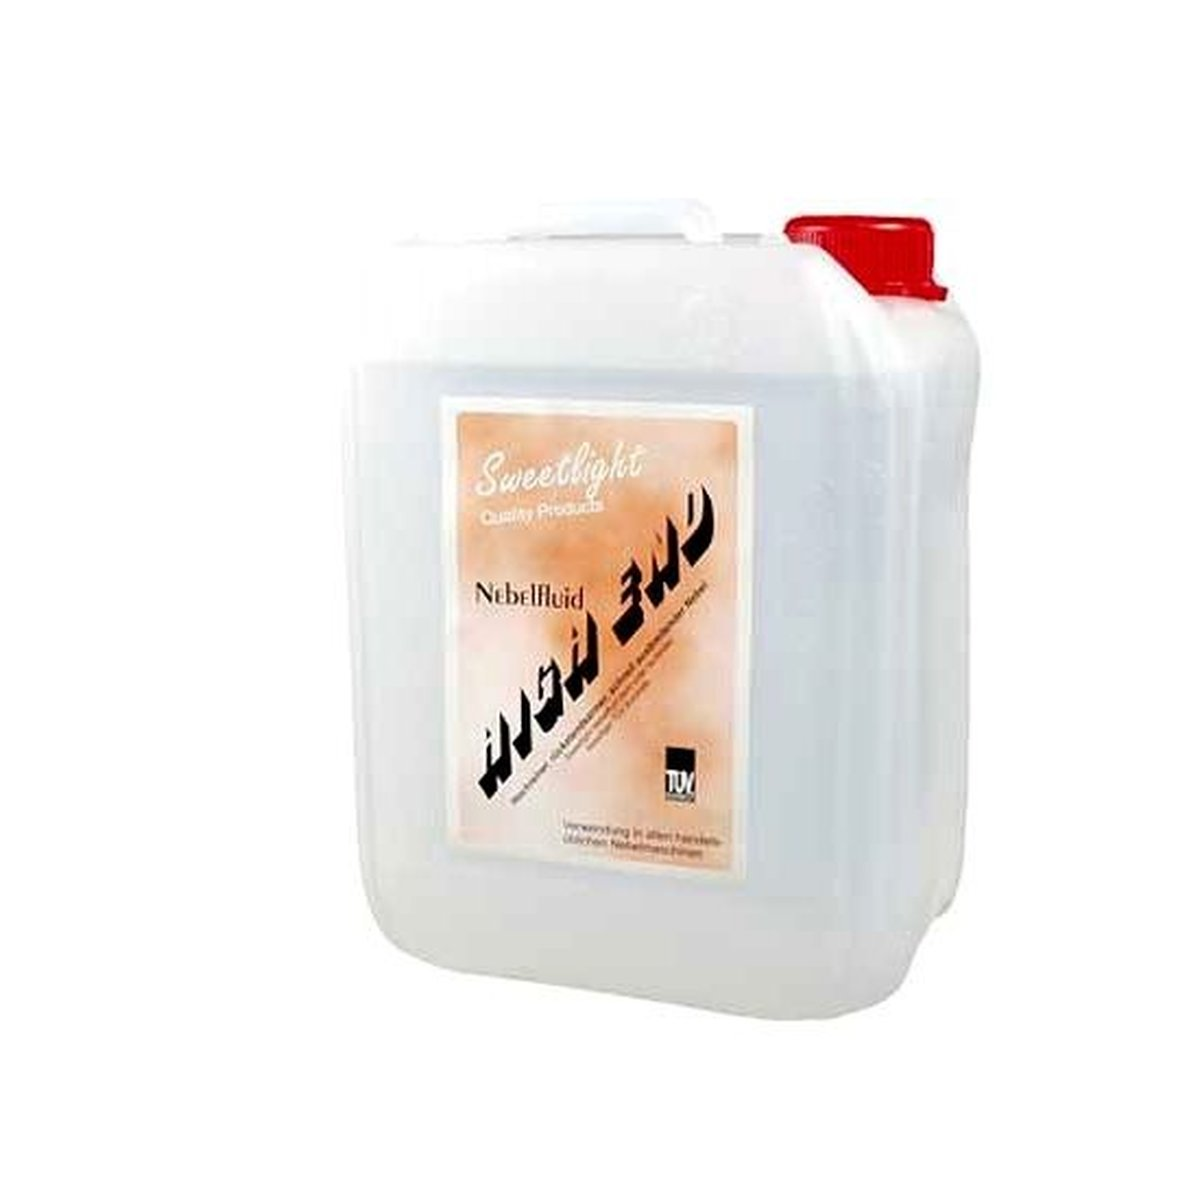 Sweetlight NF4 HIGH END Nebelfluid, 5L